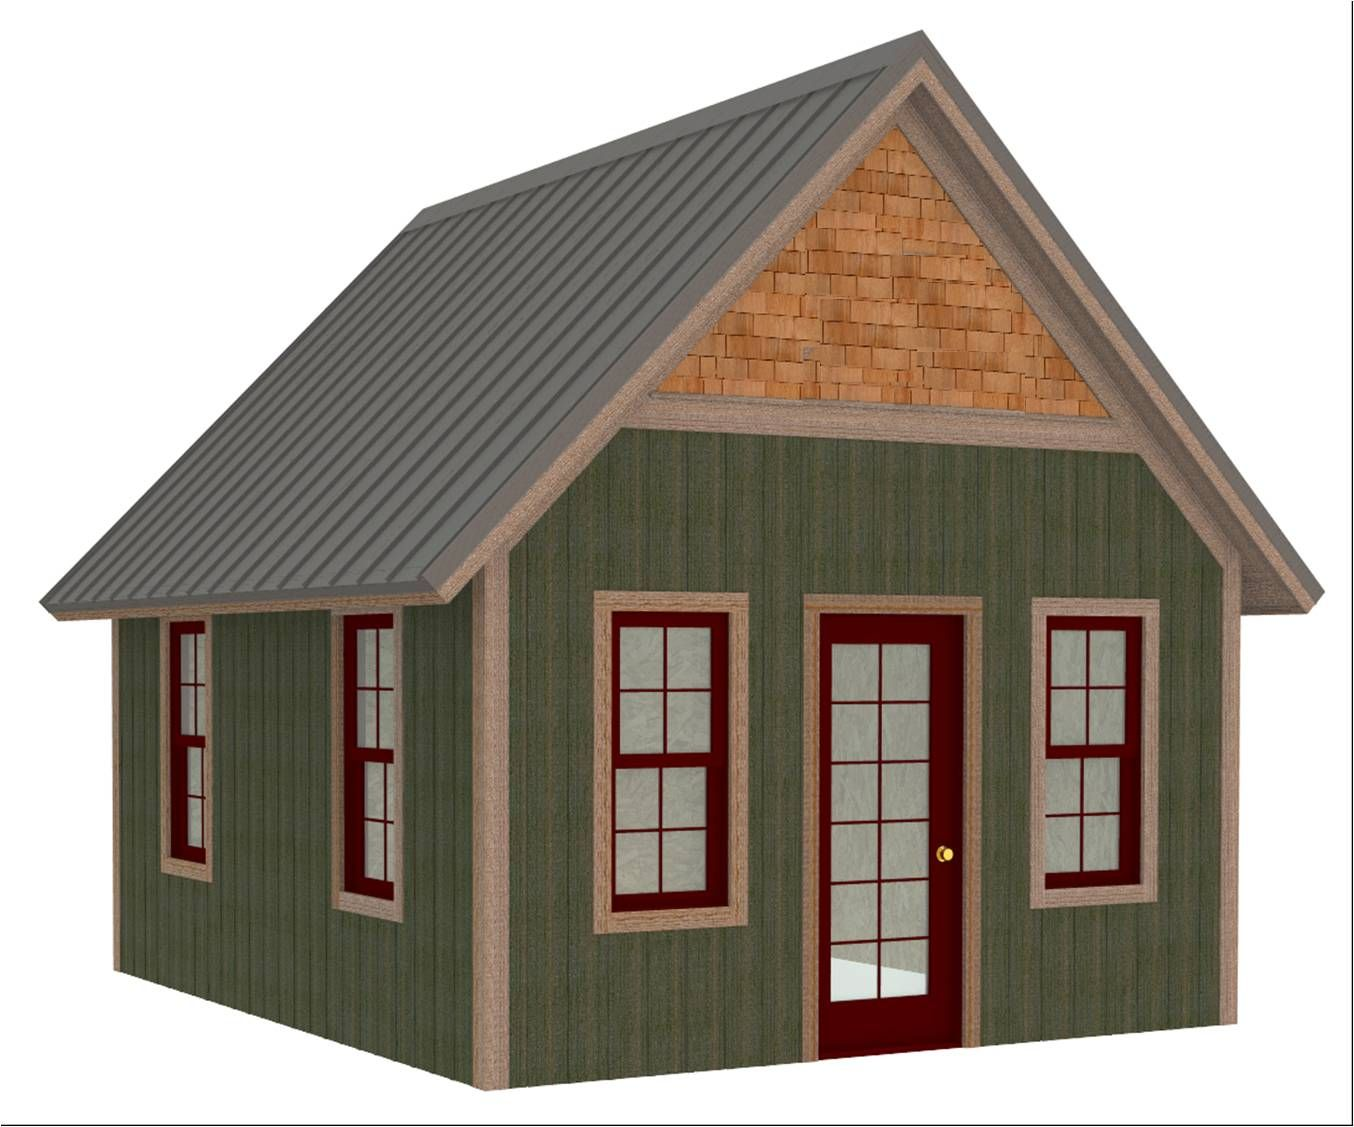 This almost 200sf cabin would typically retail for between